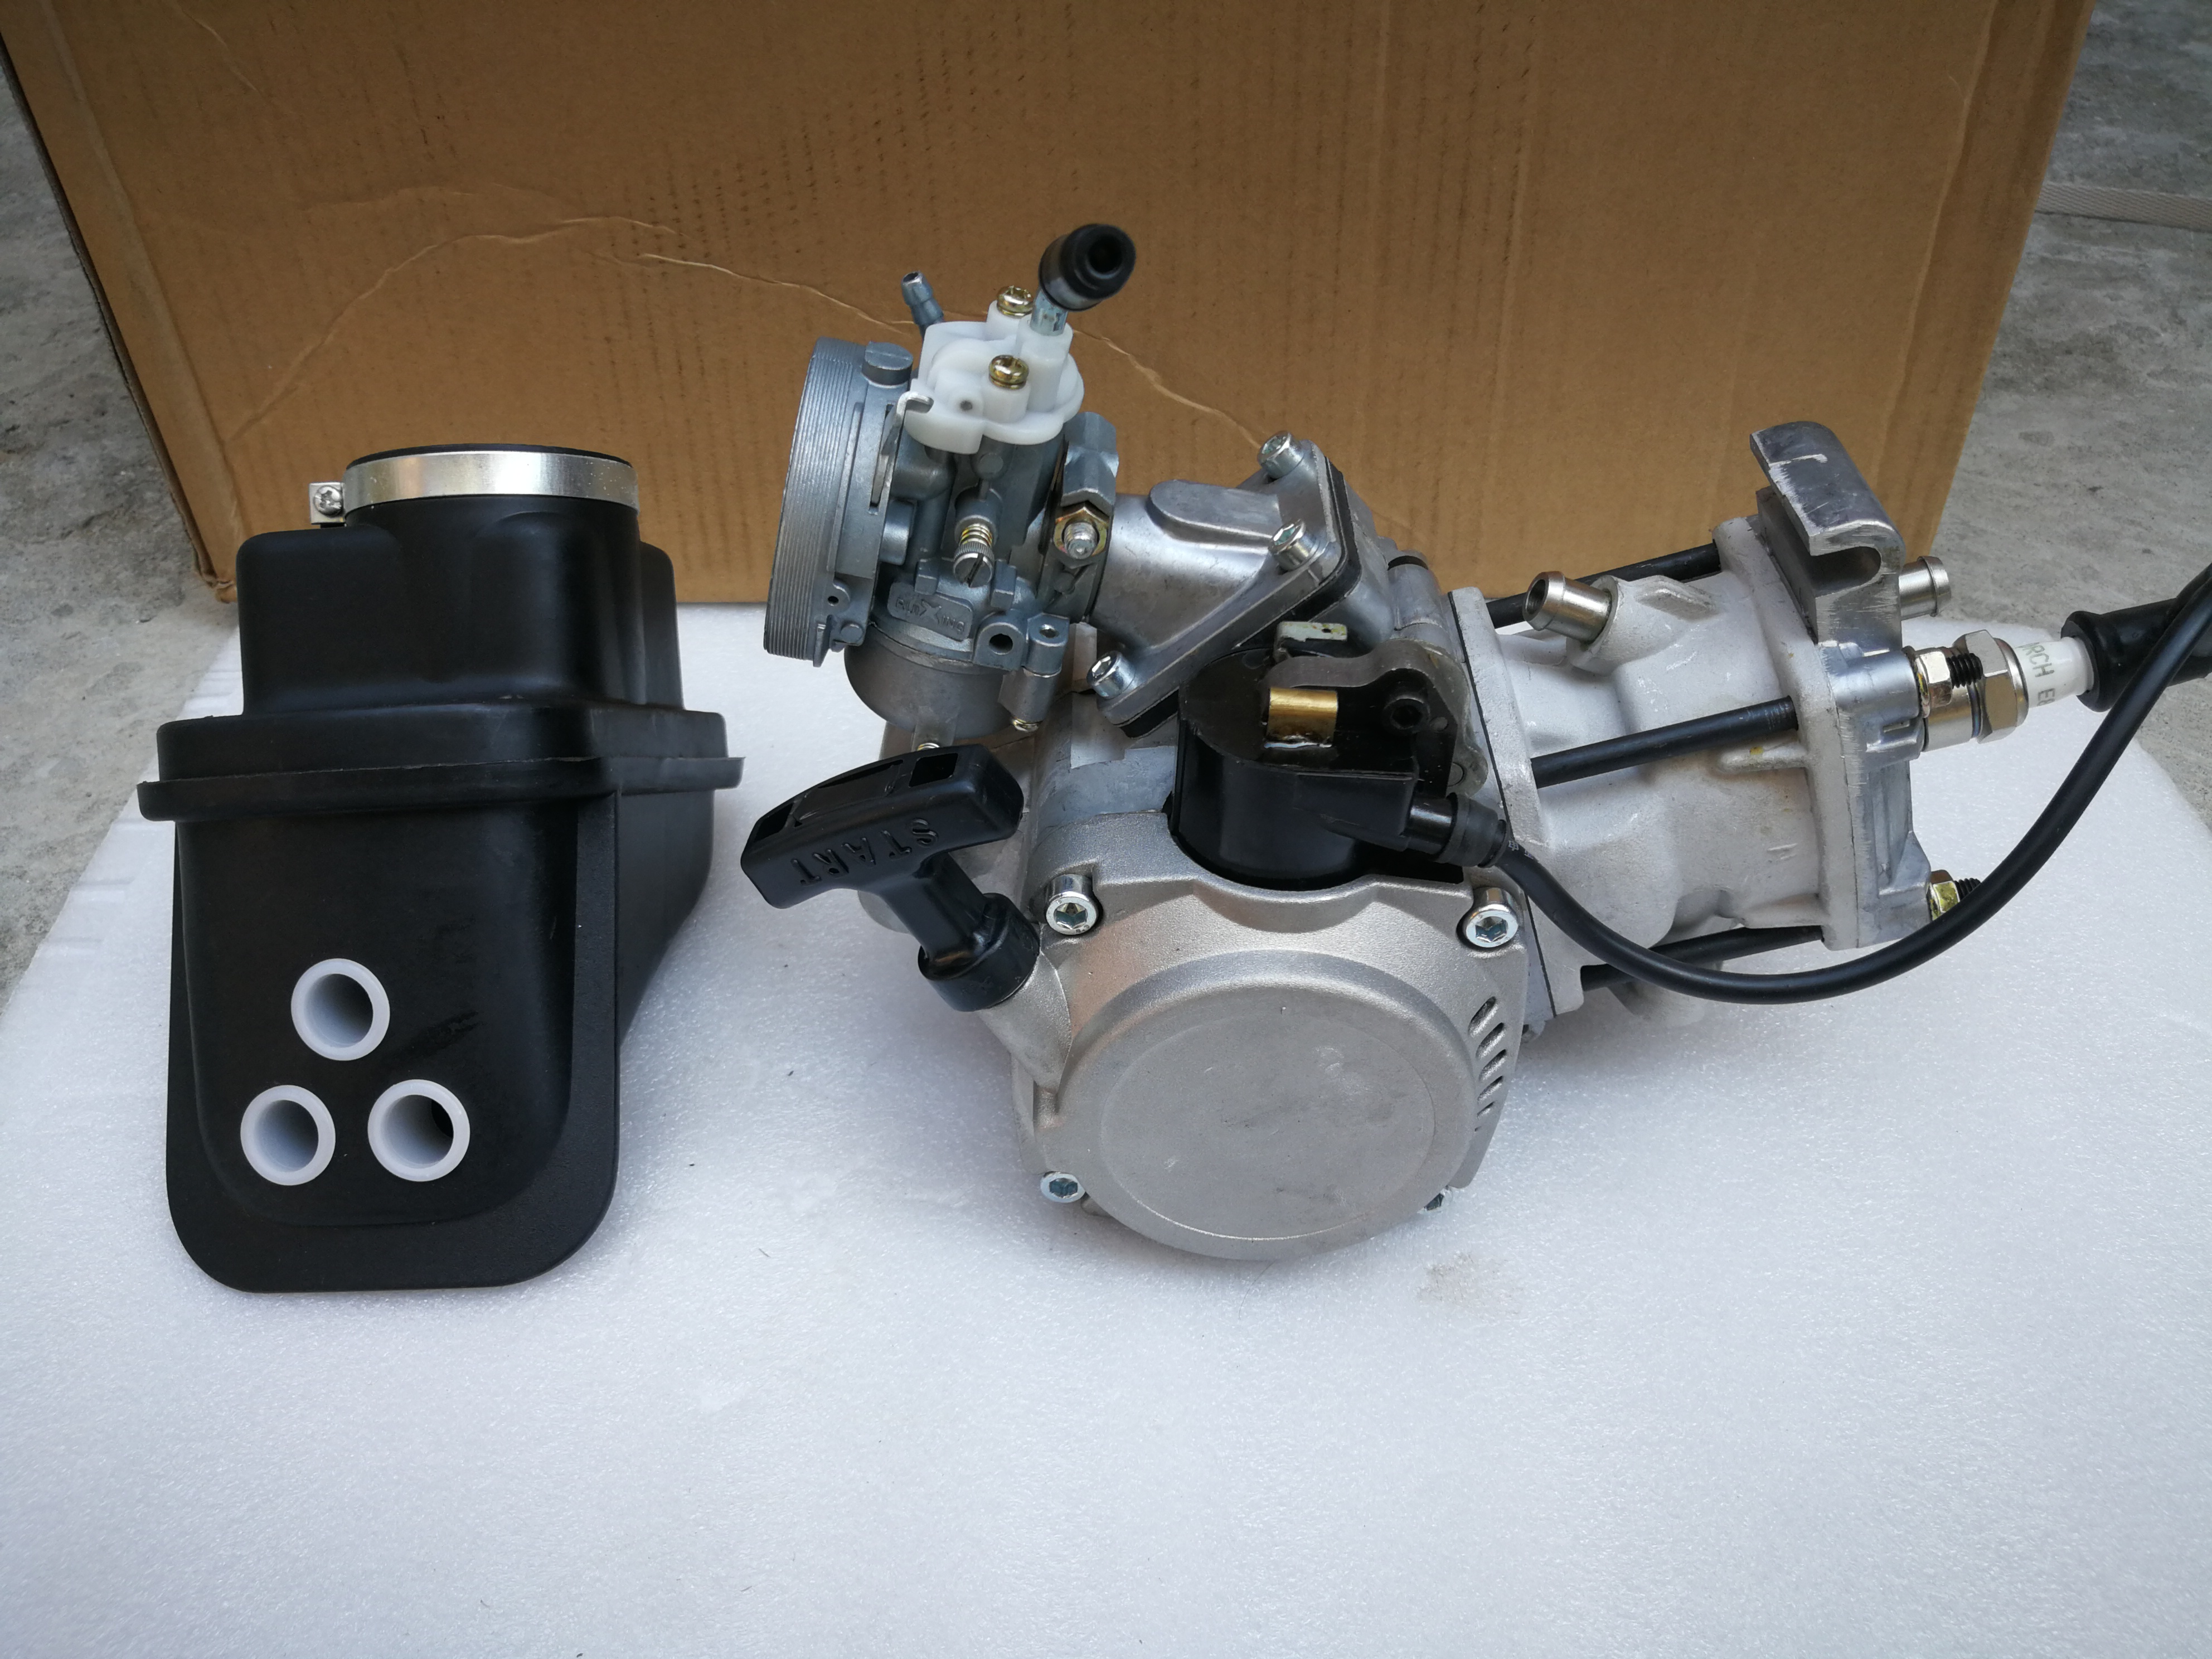 Motorcycle 40cc Engine Bike Starter Cooled Manual 911scooter Oem Pocket Polini Motor Clutch Puller Water Output Mini 39cc